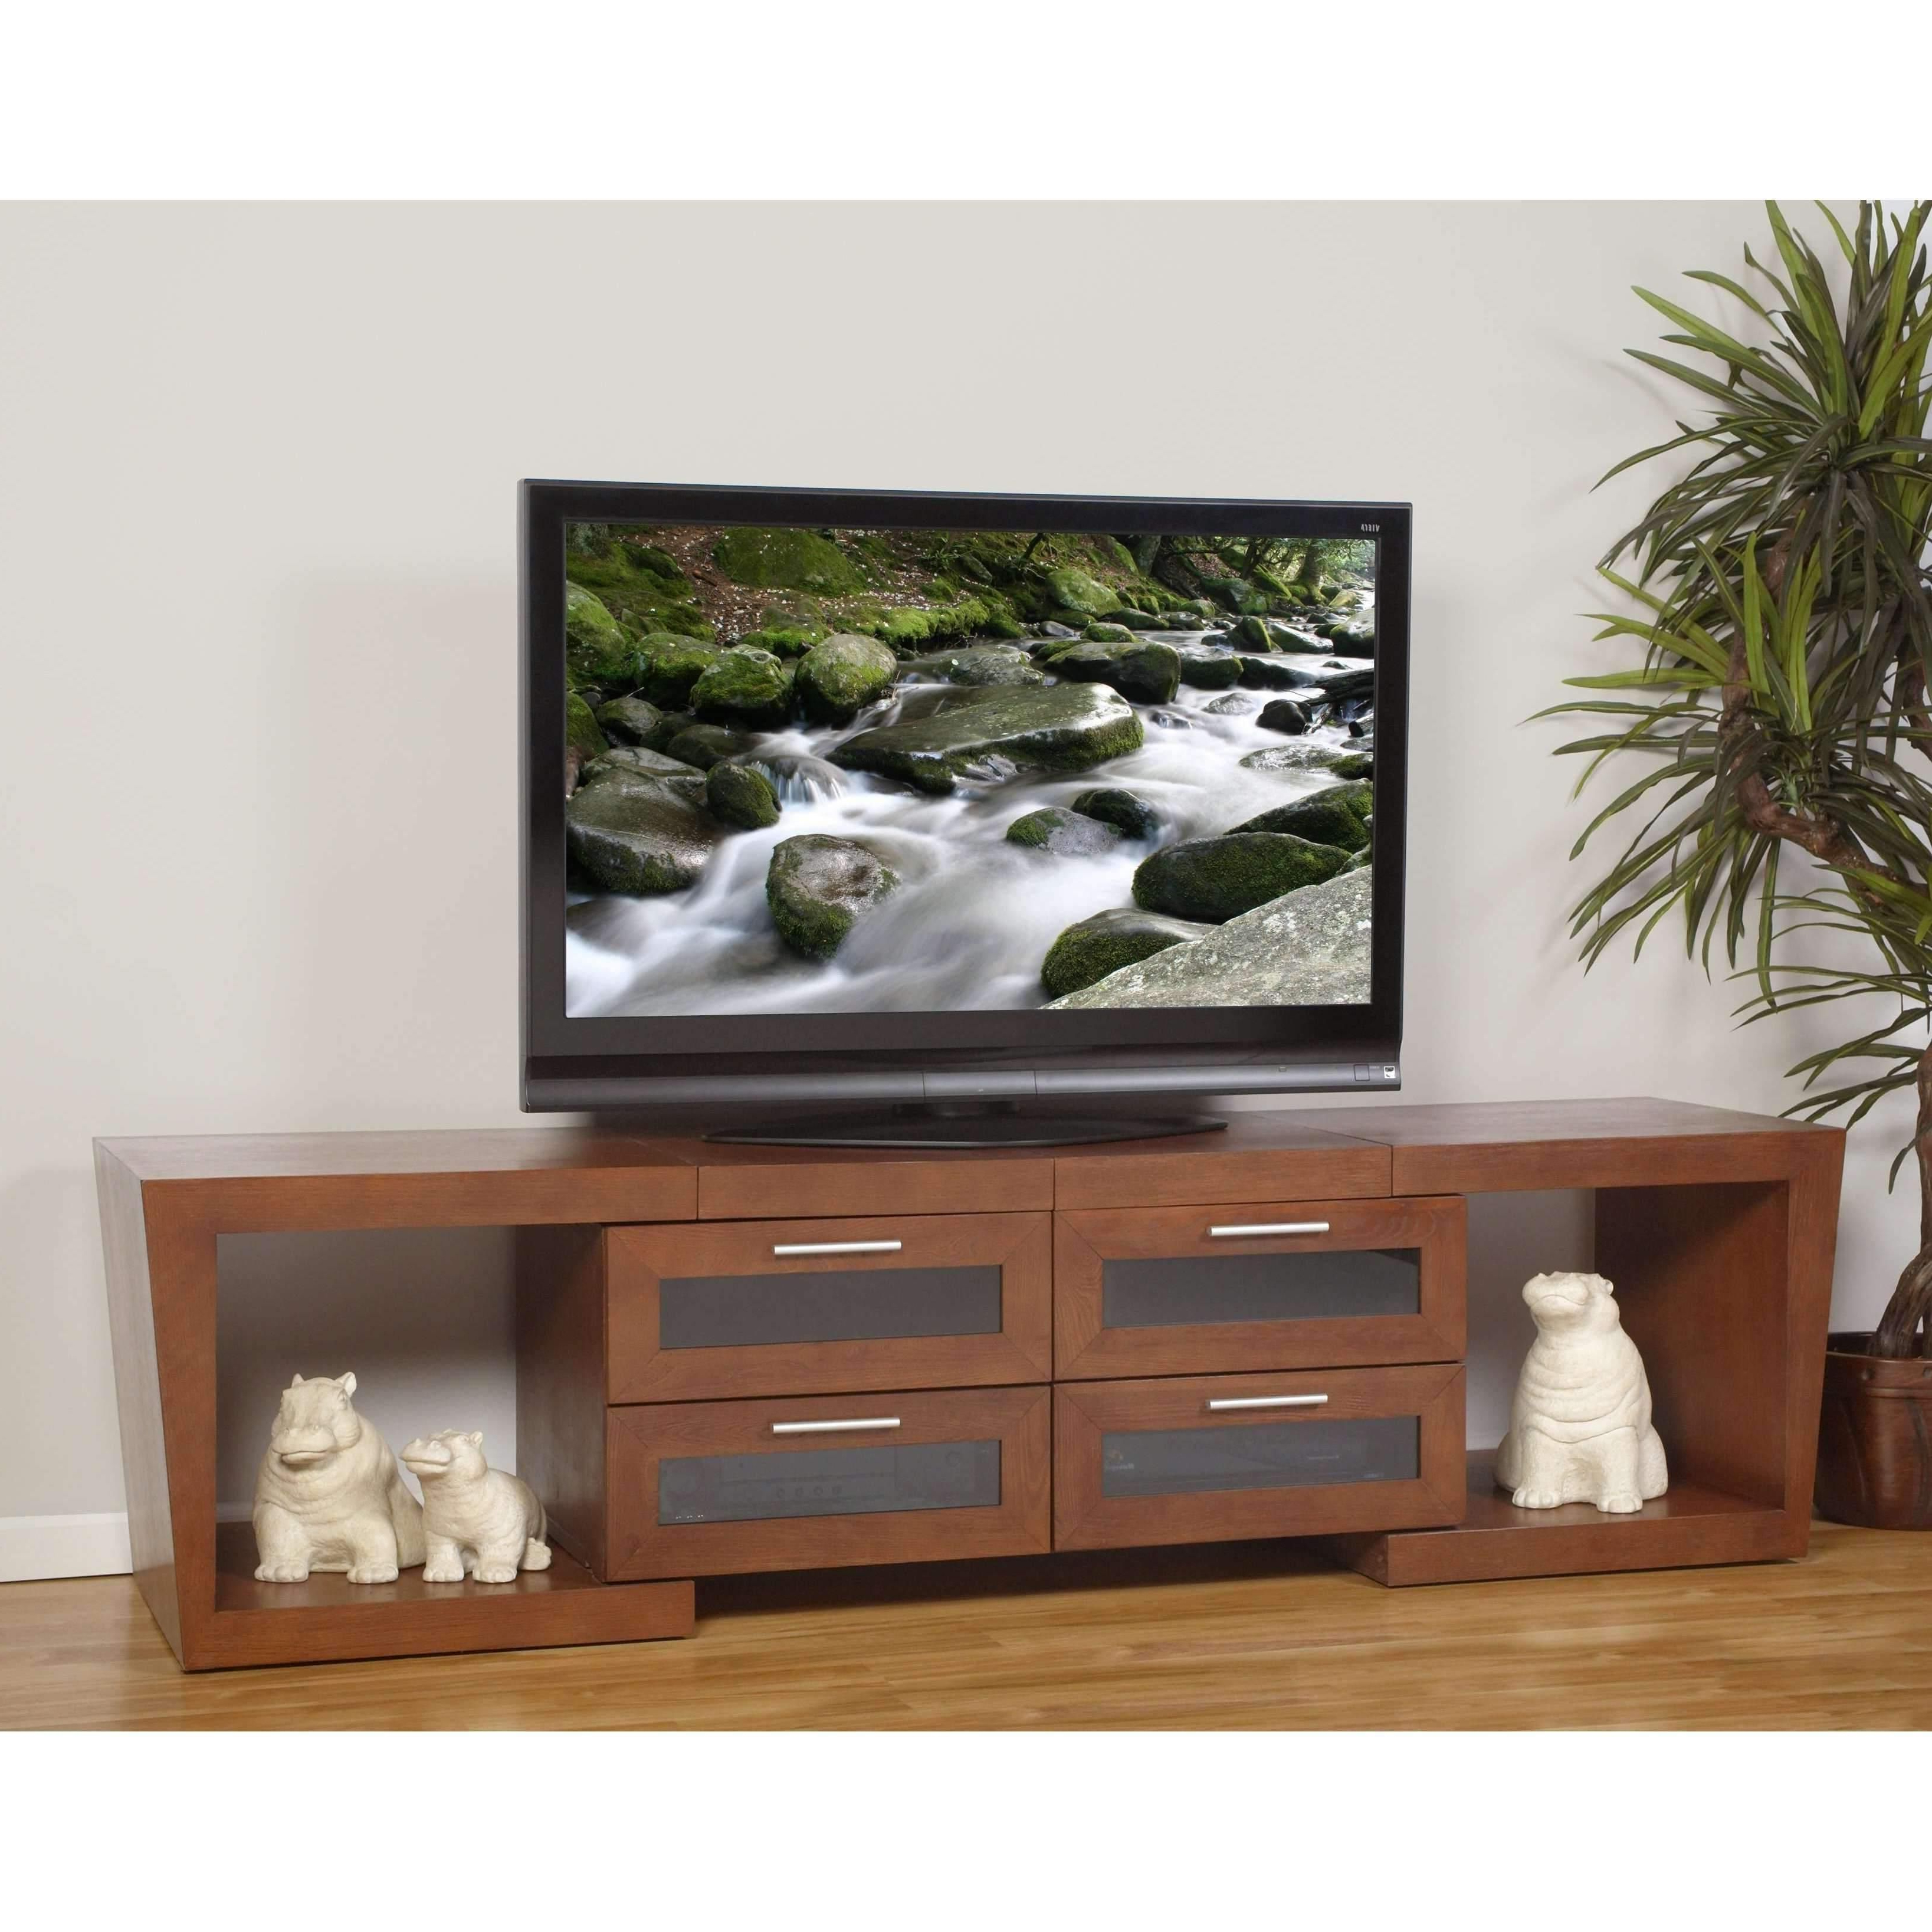 """Latest Plateau Valencia 5187 W Wood Expandable 51"""" – 87"""" Tv Stand, Walnut With Regard To Valencia 70 Inch Tv Stands (Gallery 4 of 20)"""